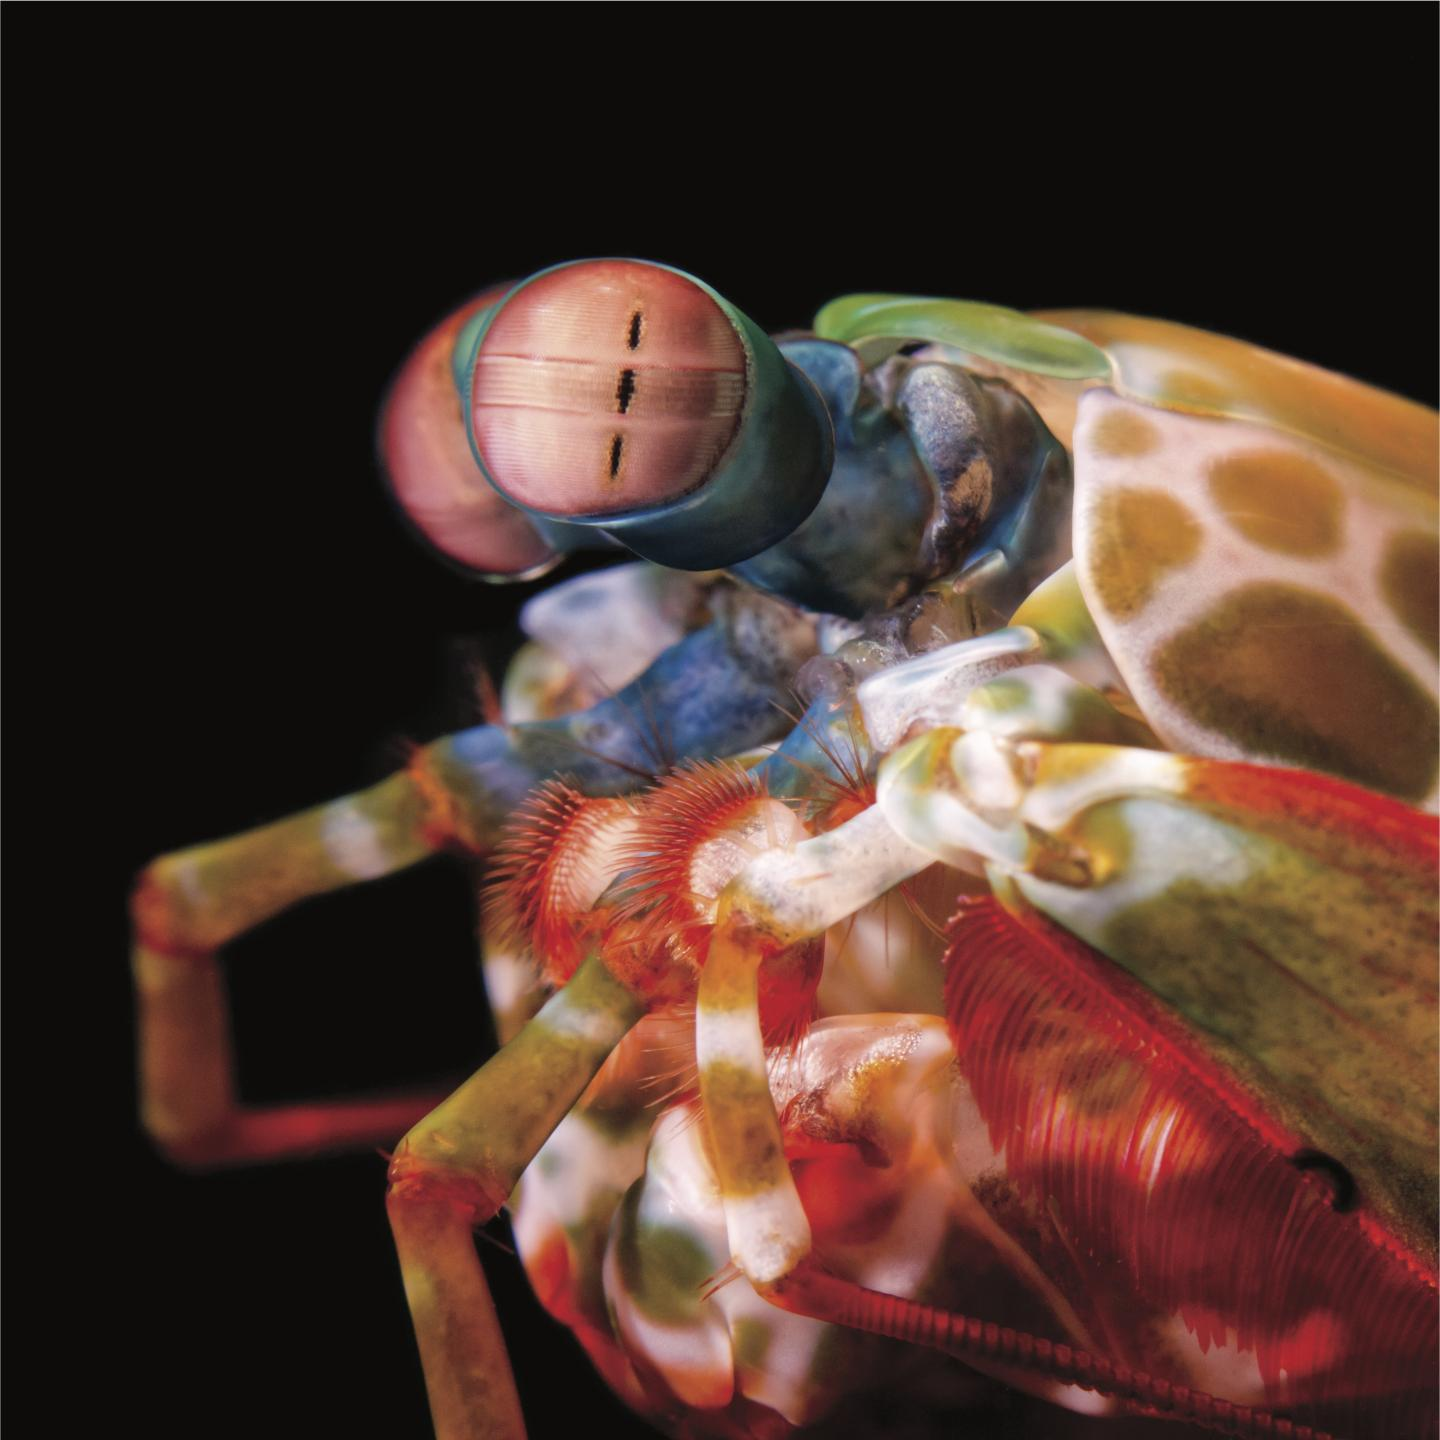 The eyes of the mantis shrimp are capable of independent rotation in all three rotational degrees of freedom.